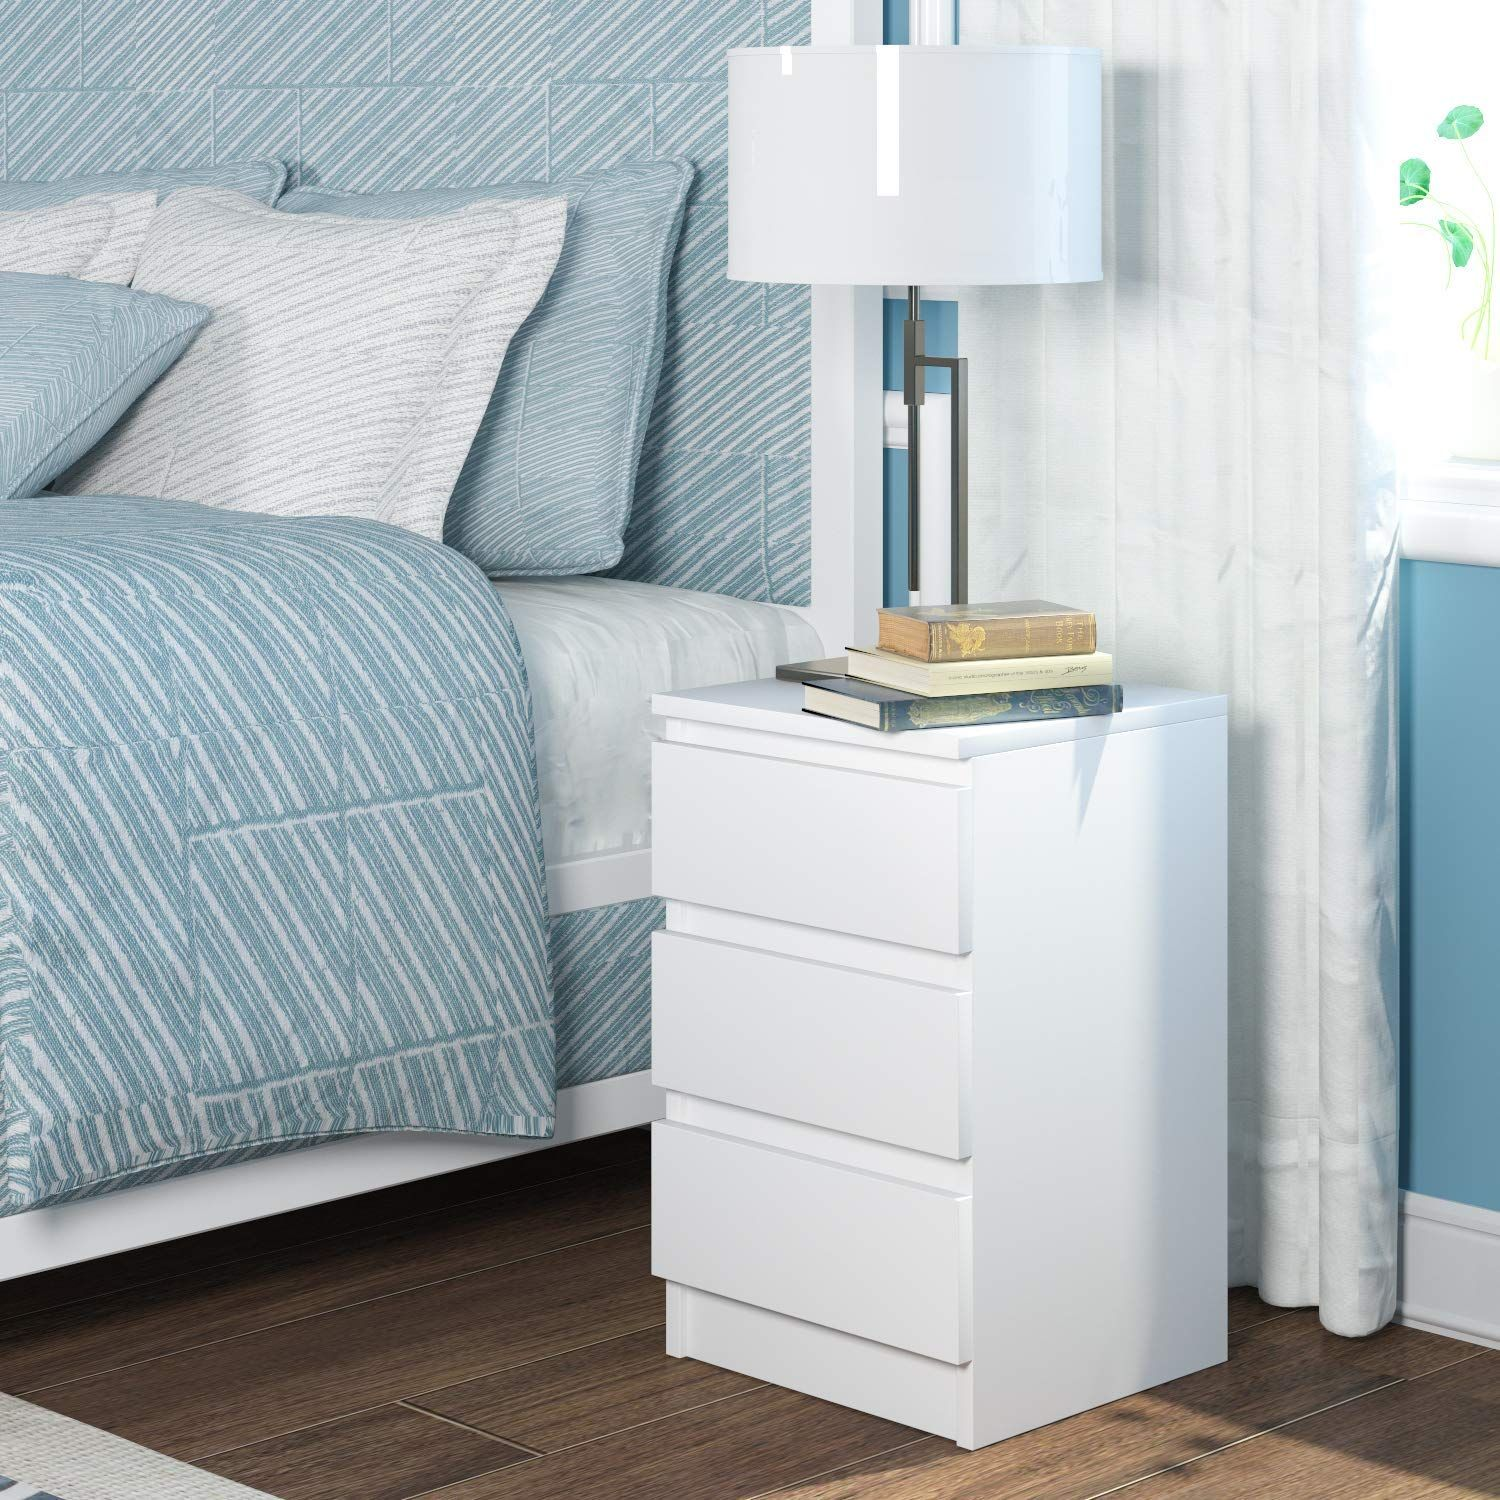 Homfa Chest Drawers Bedside Table Storage Cabinet 3 Drawers Bedroom Furniture White 38x28x49cm White Bedroom Furniture Furniture Bedside Table Storage